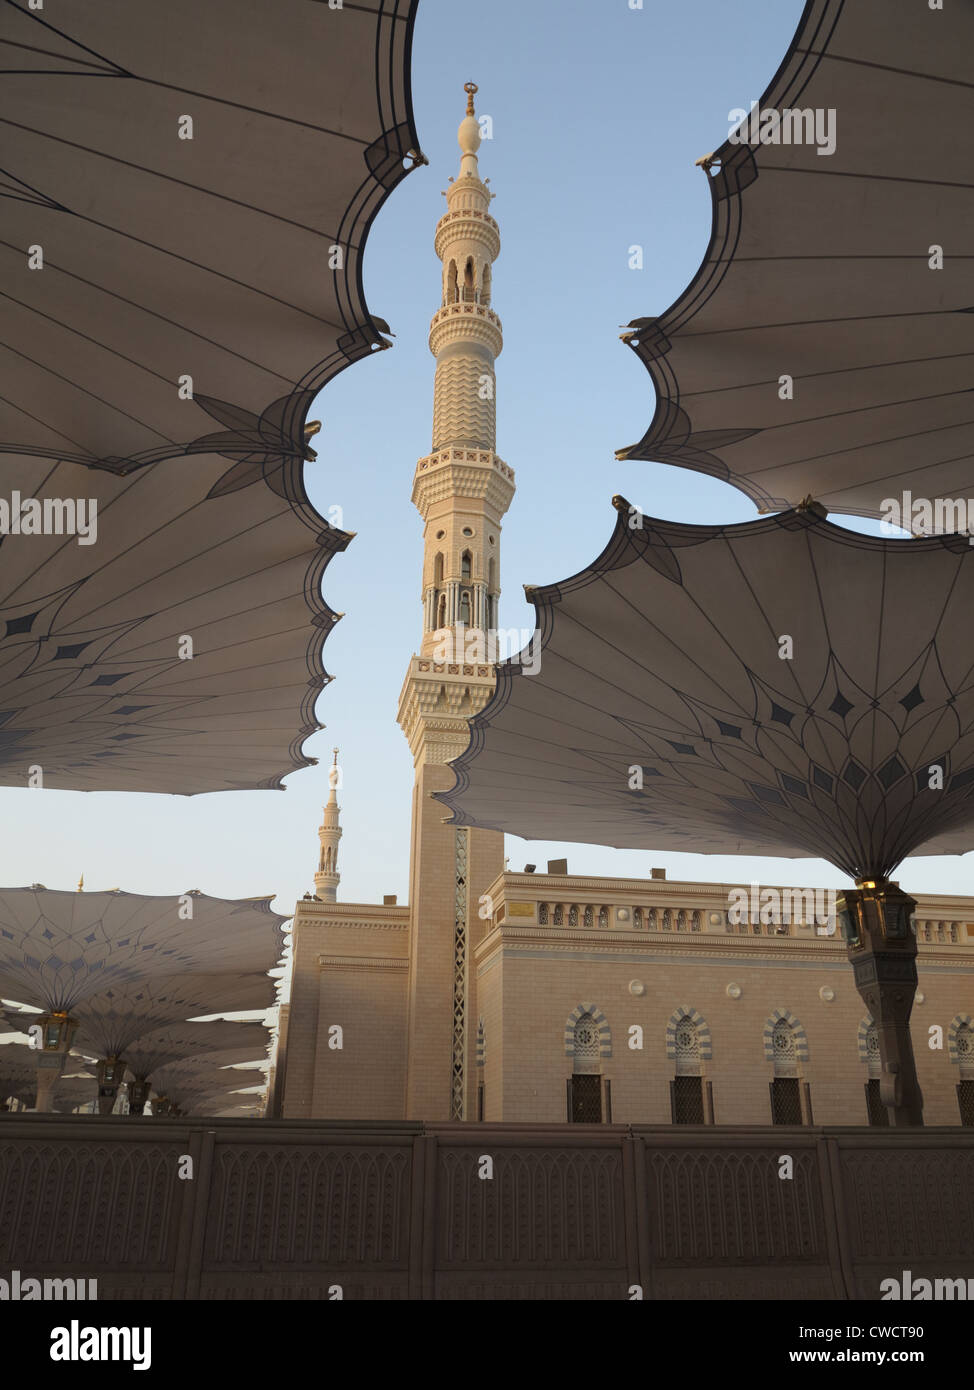 Minaret at An Nabawi Mosque (Mosque of the Prophet) in Al Madinah, Saudi Arabia - Stock Image